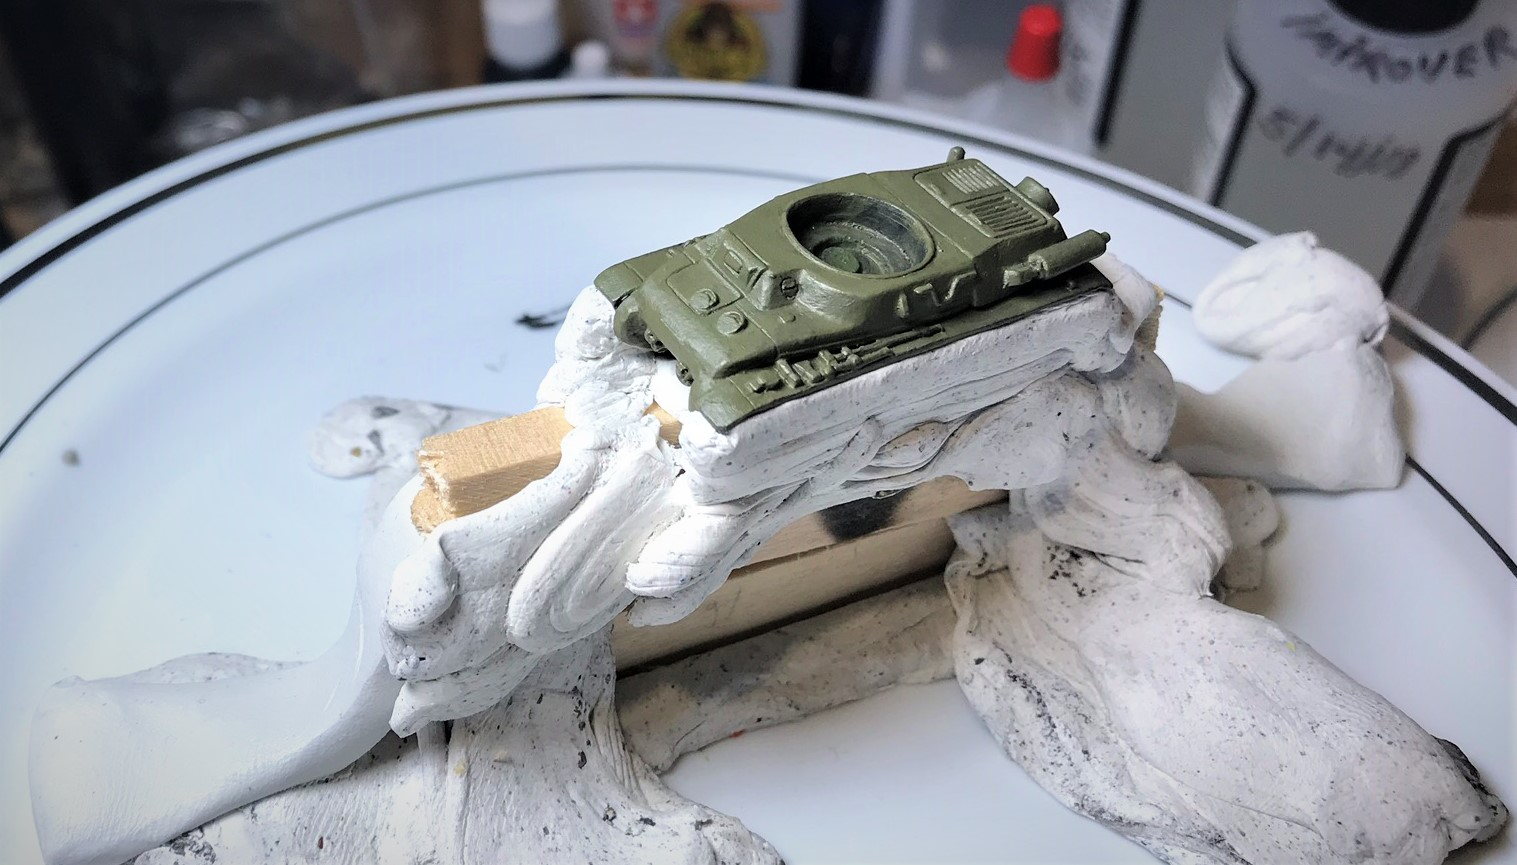 12 H39 masked for airbrush camo